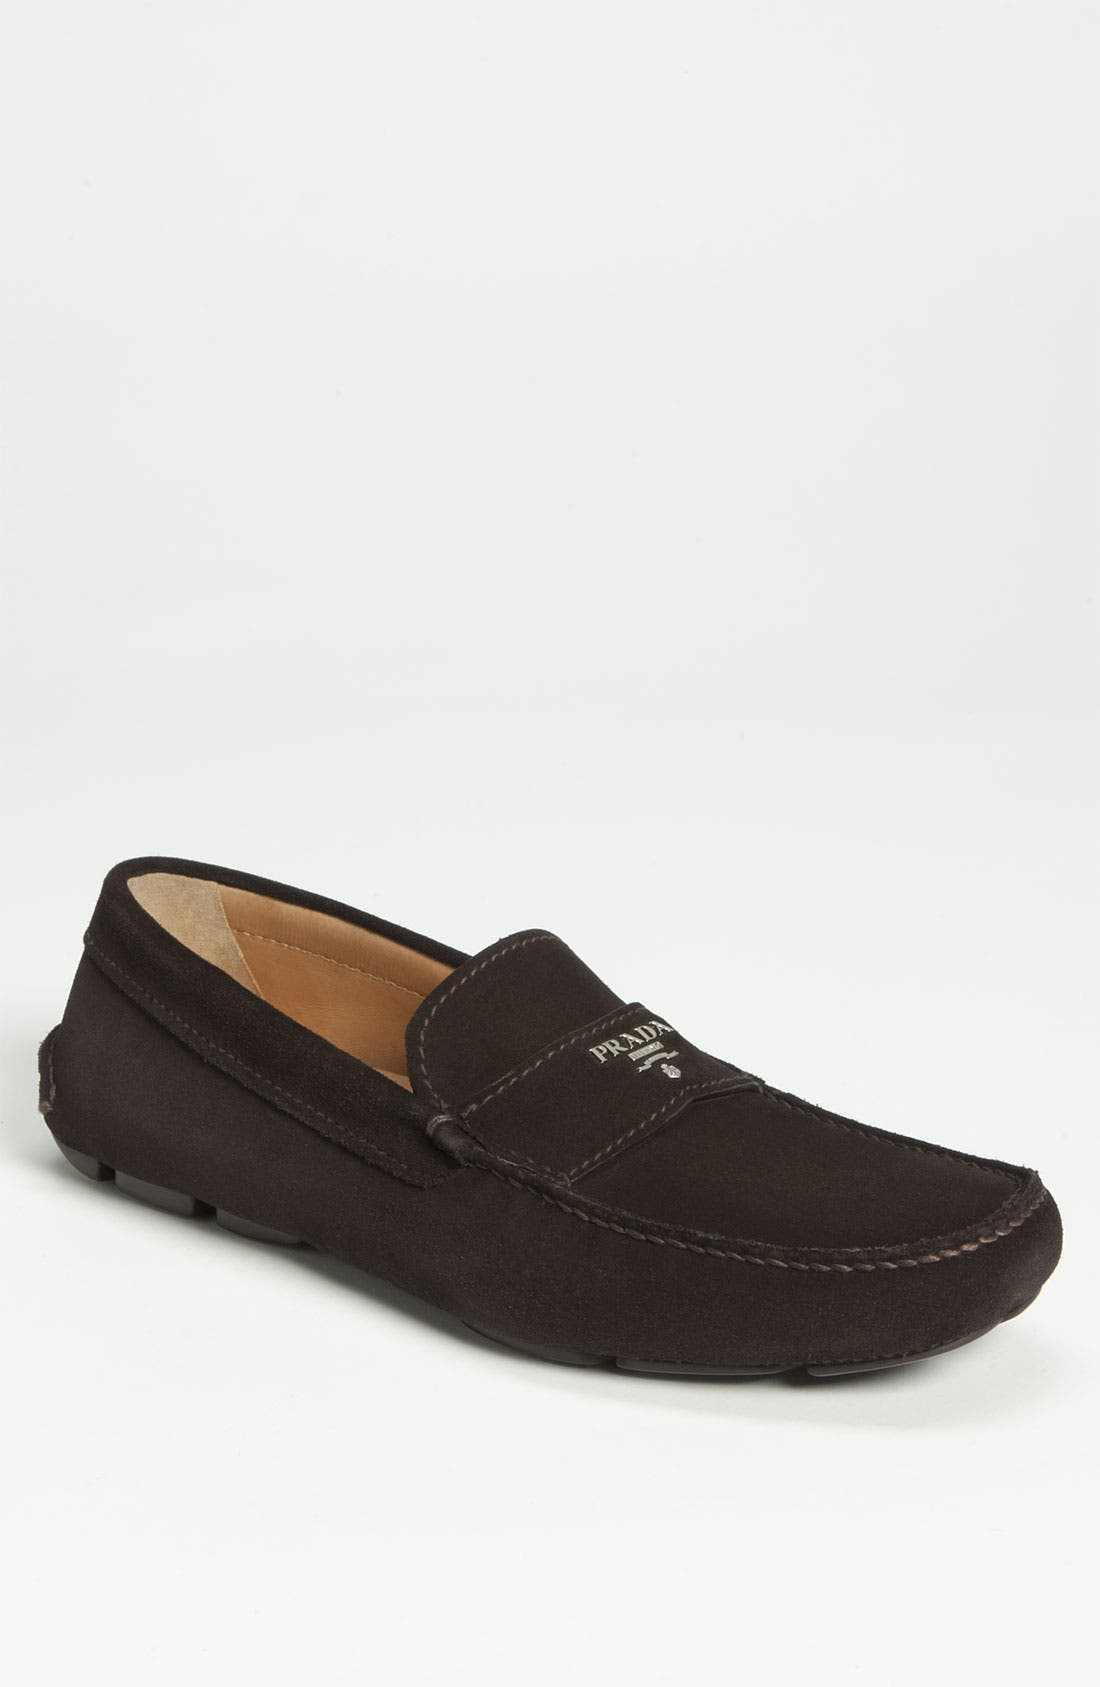 Alternate Image 1 Selected - Prada Suede Driving Shoe